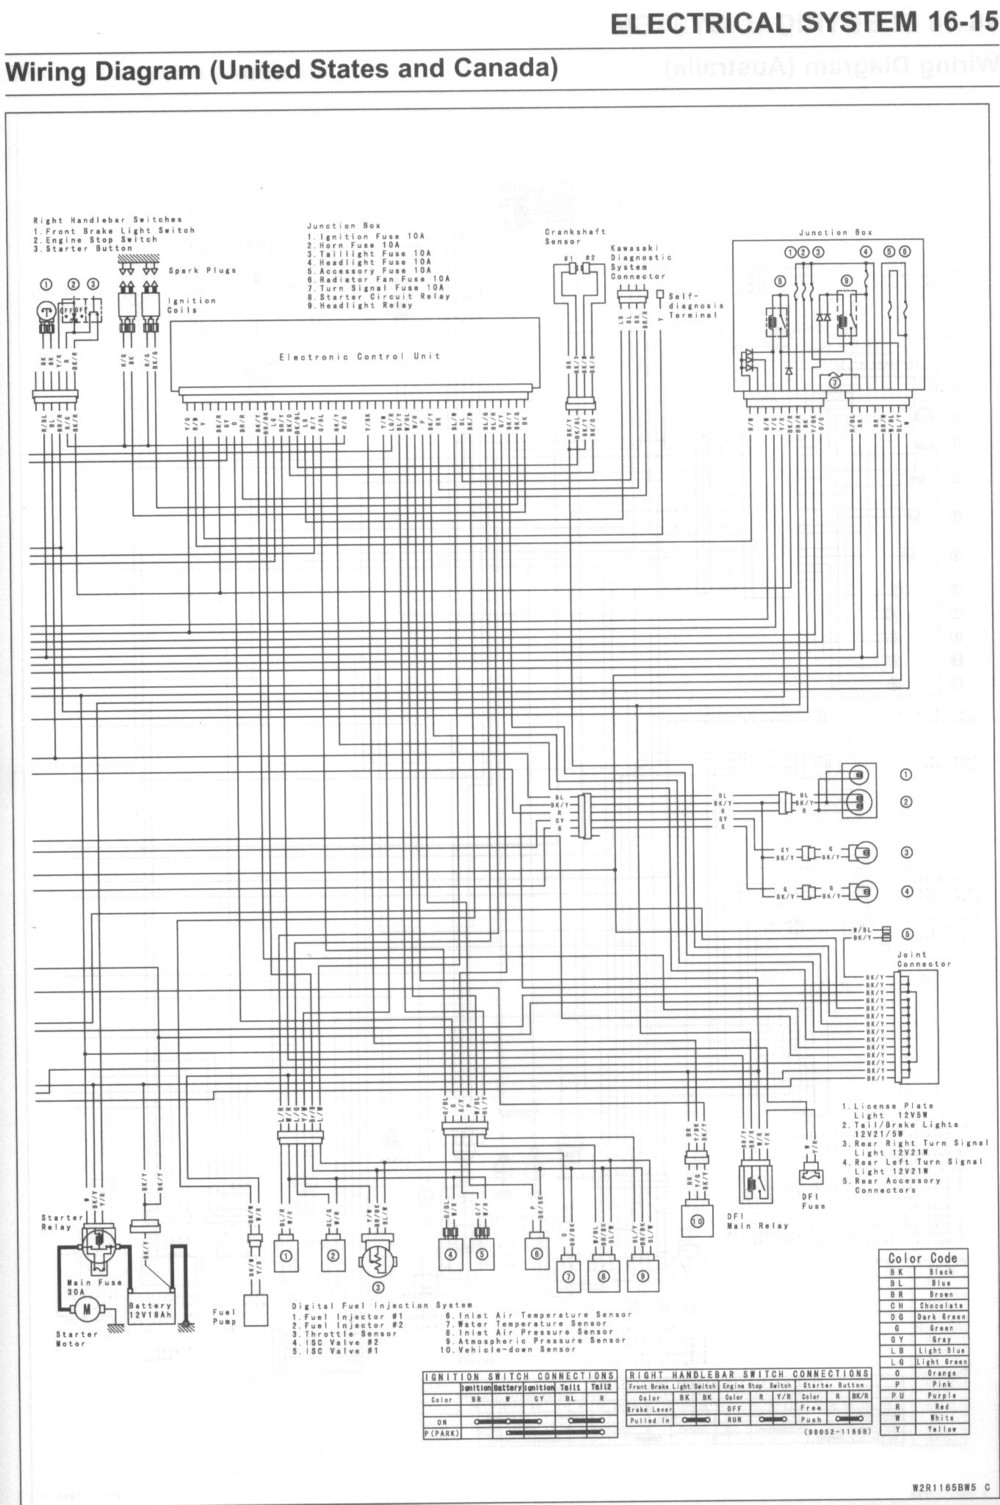 Wire Diagram 2008 Kawasaki Teryx Simple Guide About Wiring Nomad Diagrams